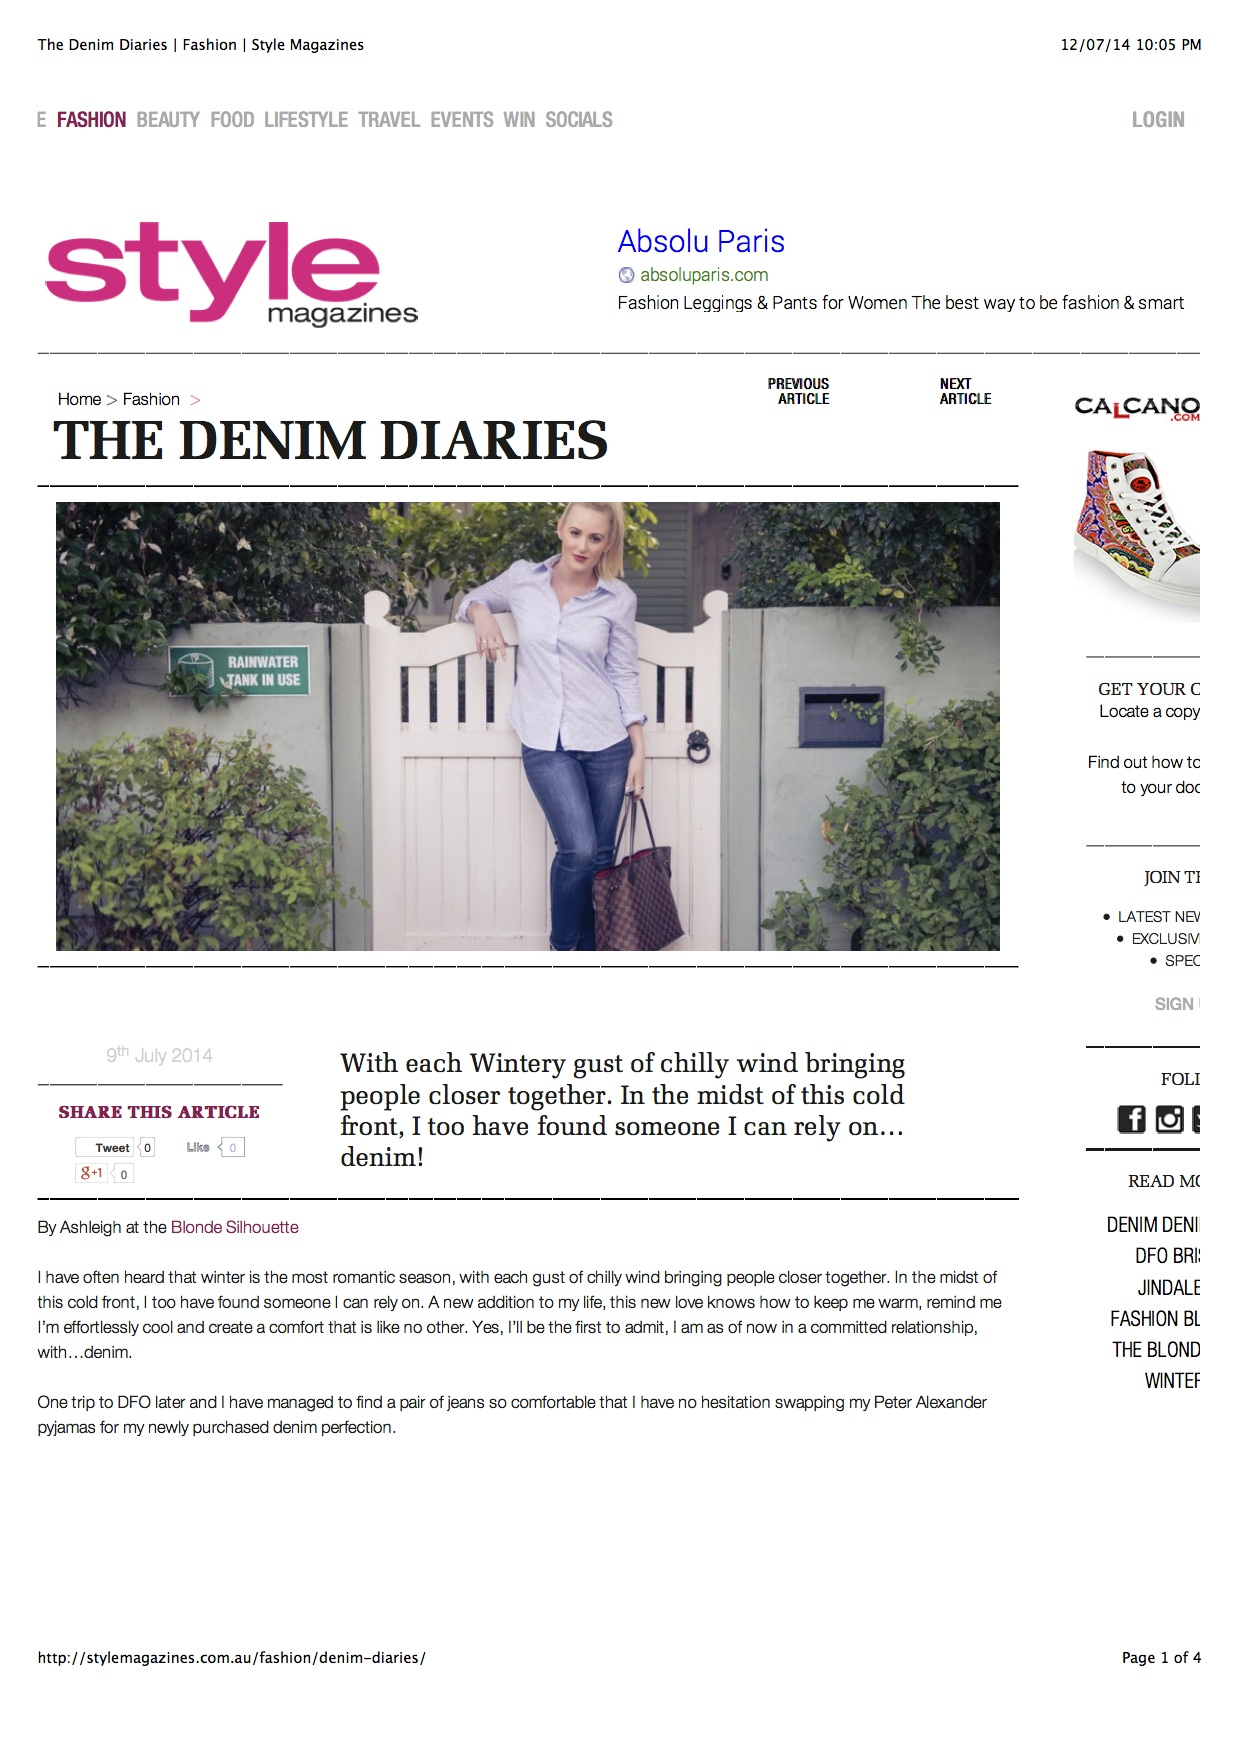 The Denim Diaries | Fashion | Style Magazines copy